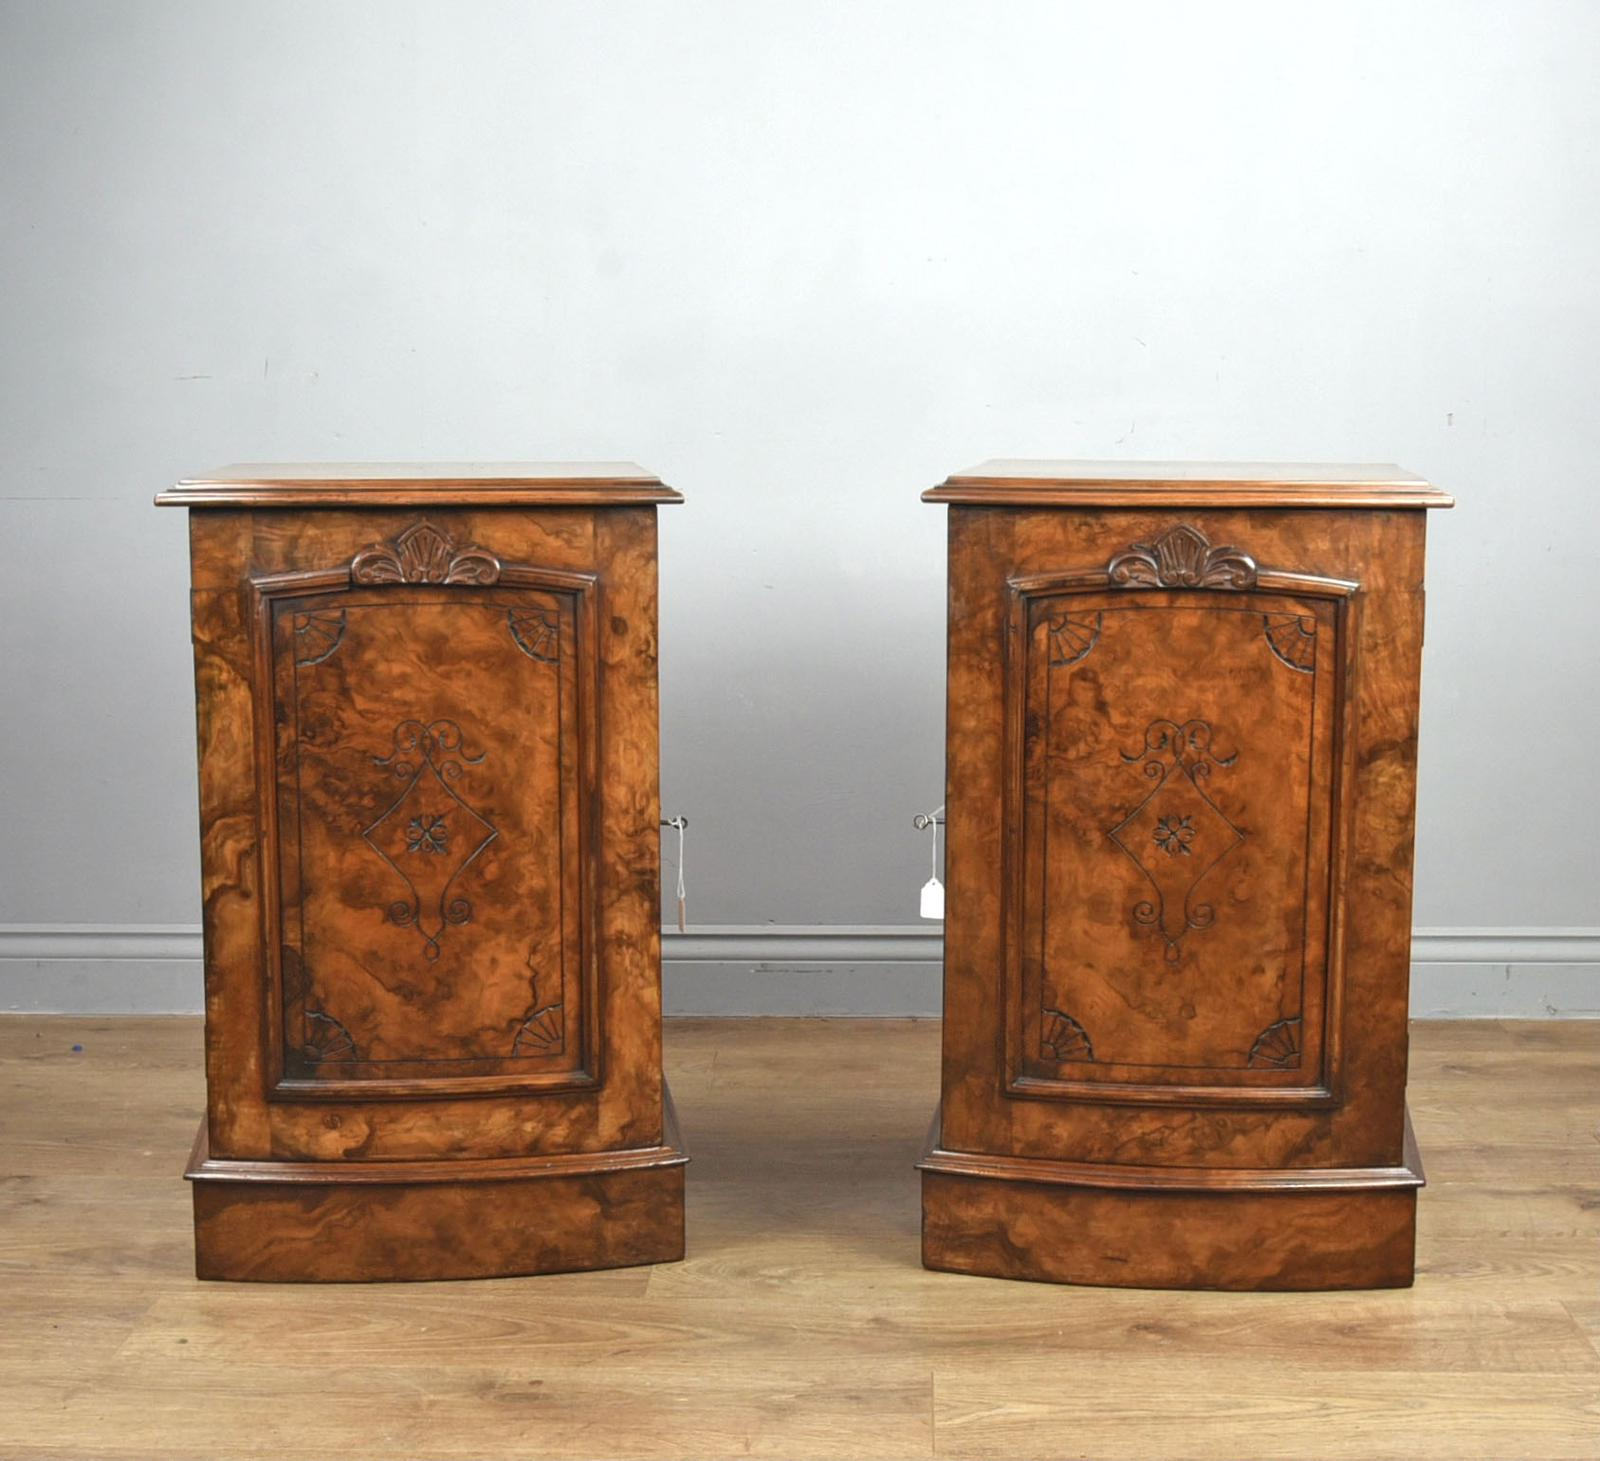 Fine Pair of Victorian Burr Walnut Bedside Cabinets (1 of 1)